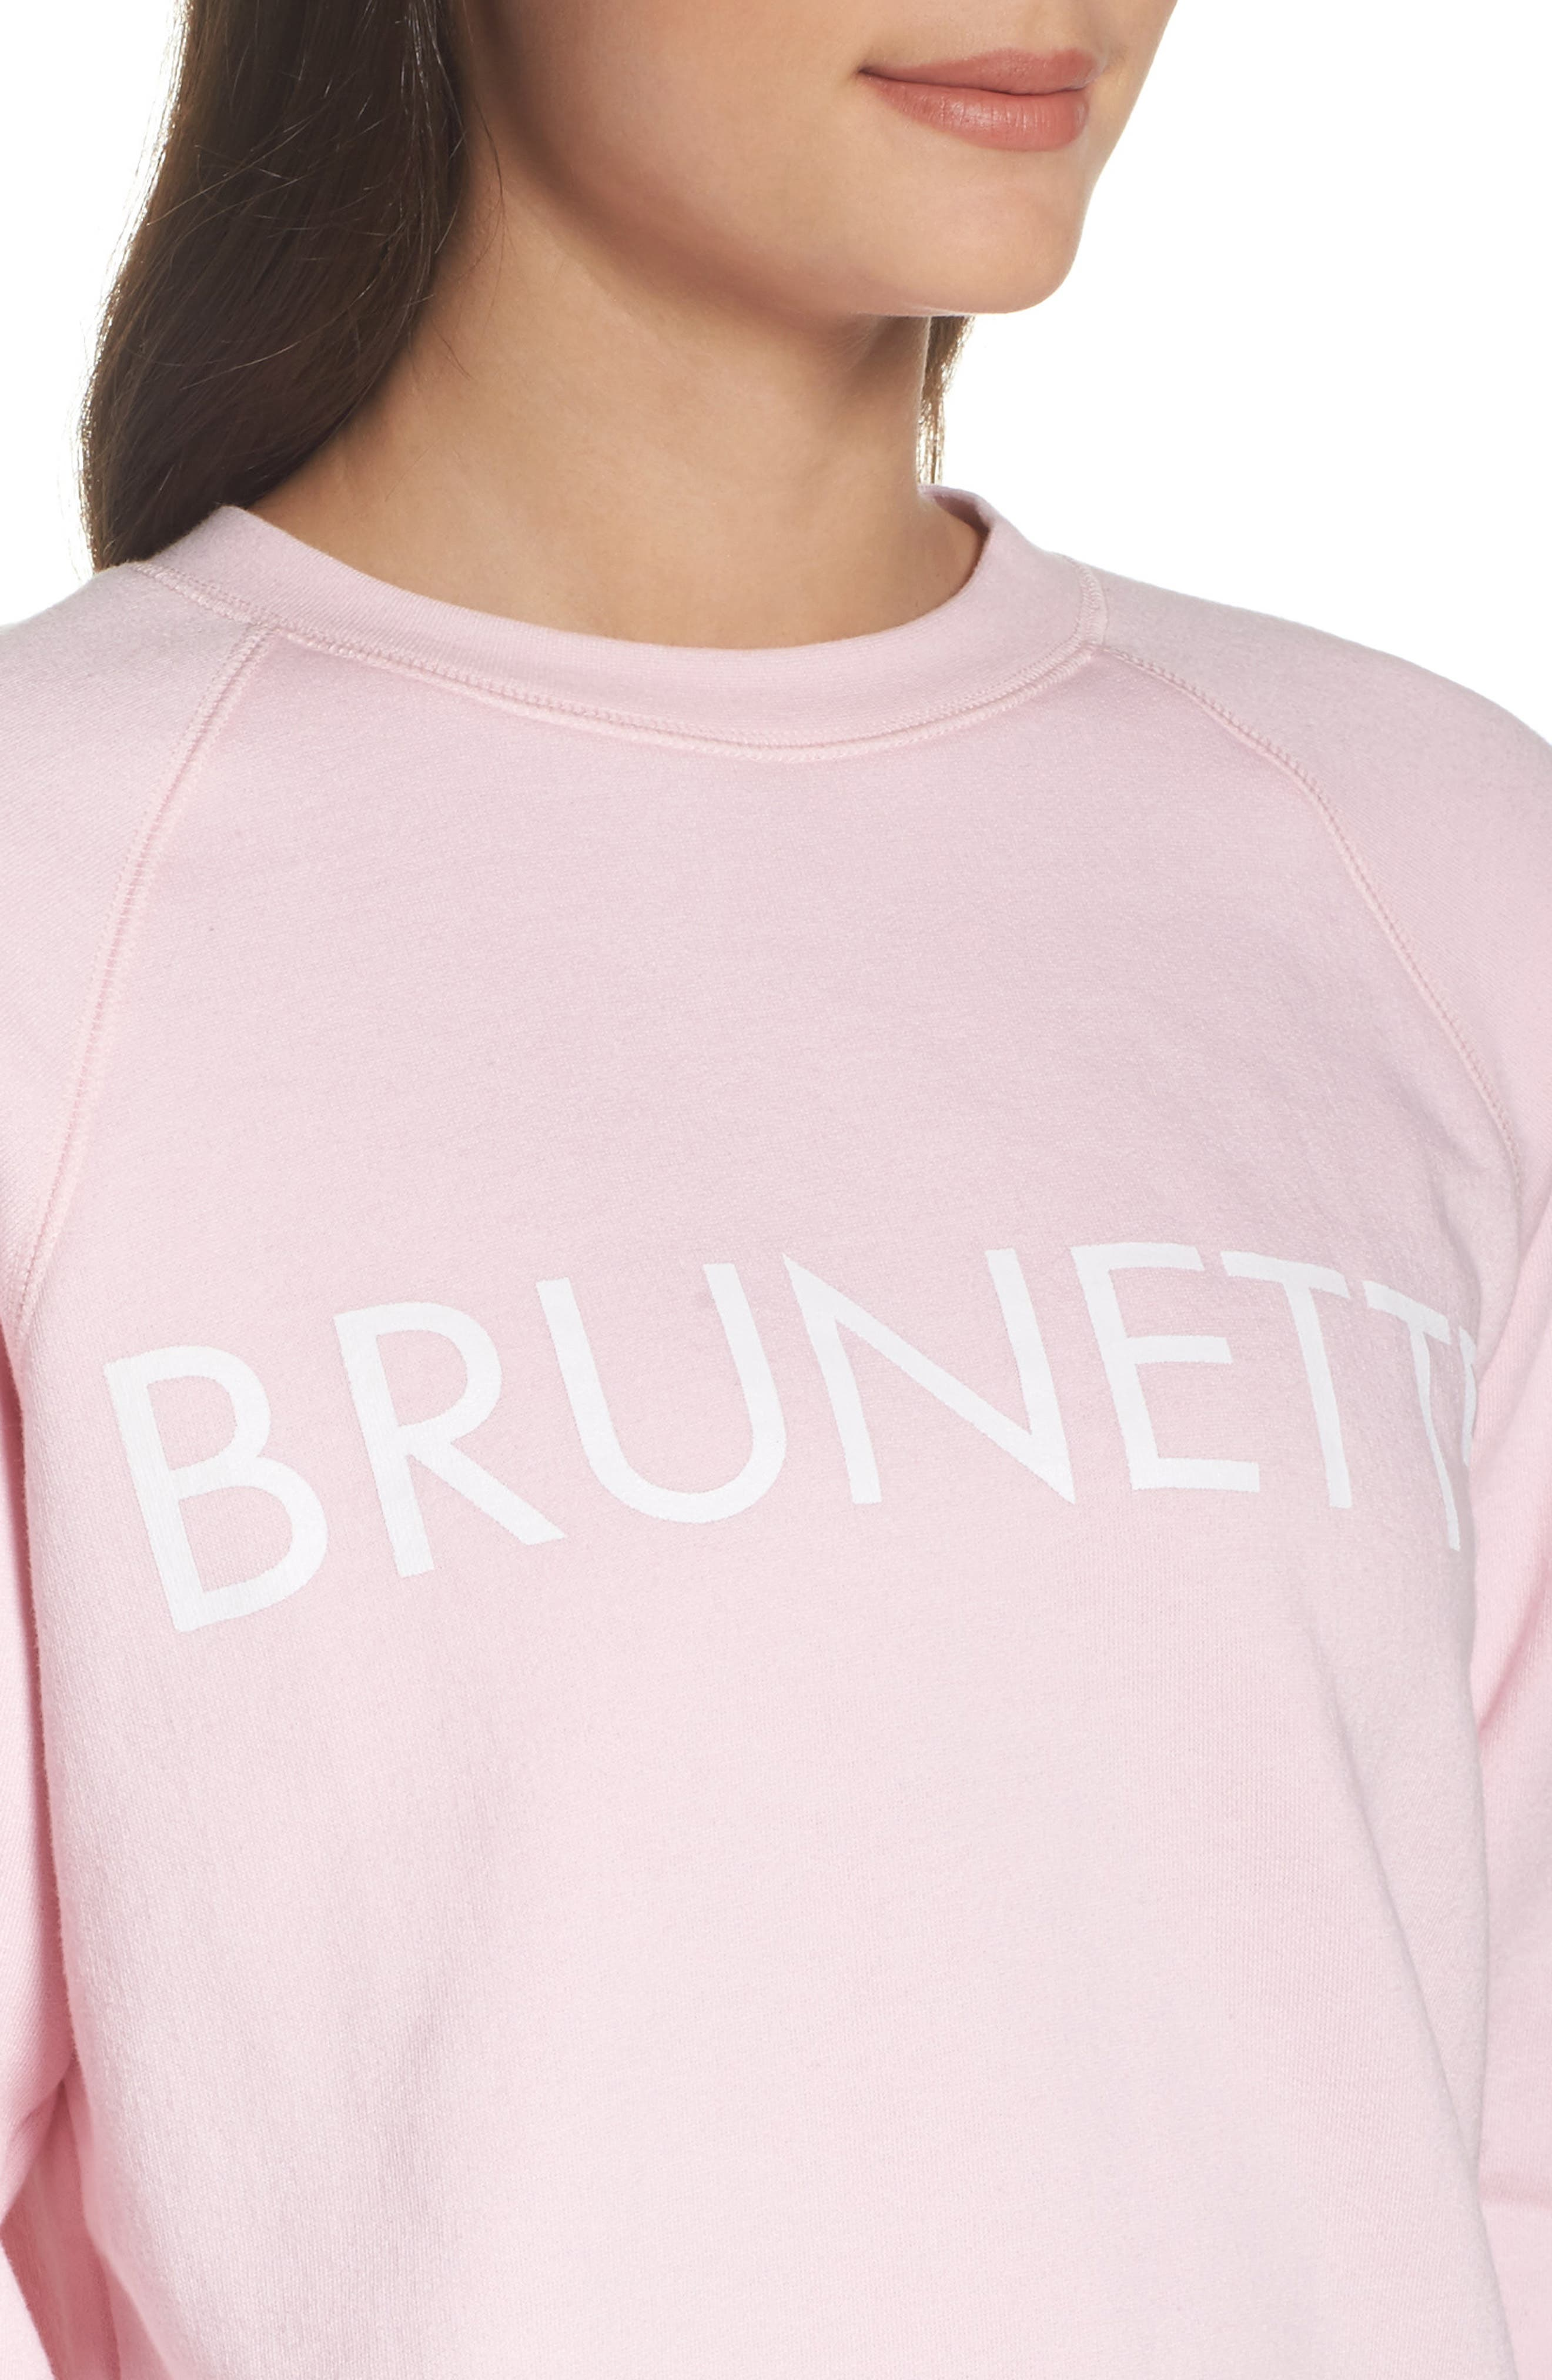 Brunette Crewneck Sweatshirt,                             Alternate thumbnail 4, color,                             650